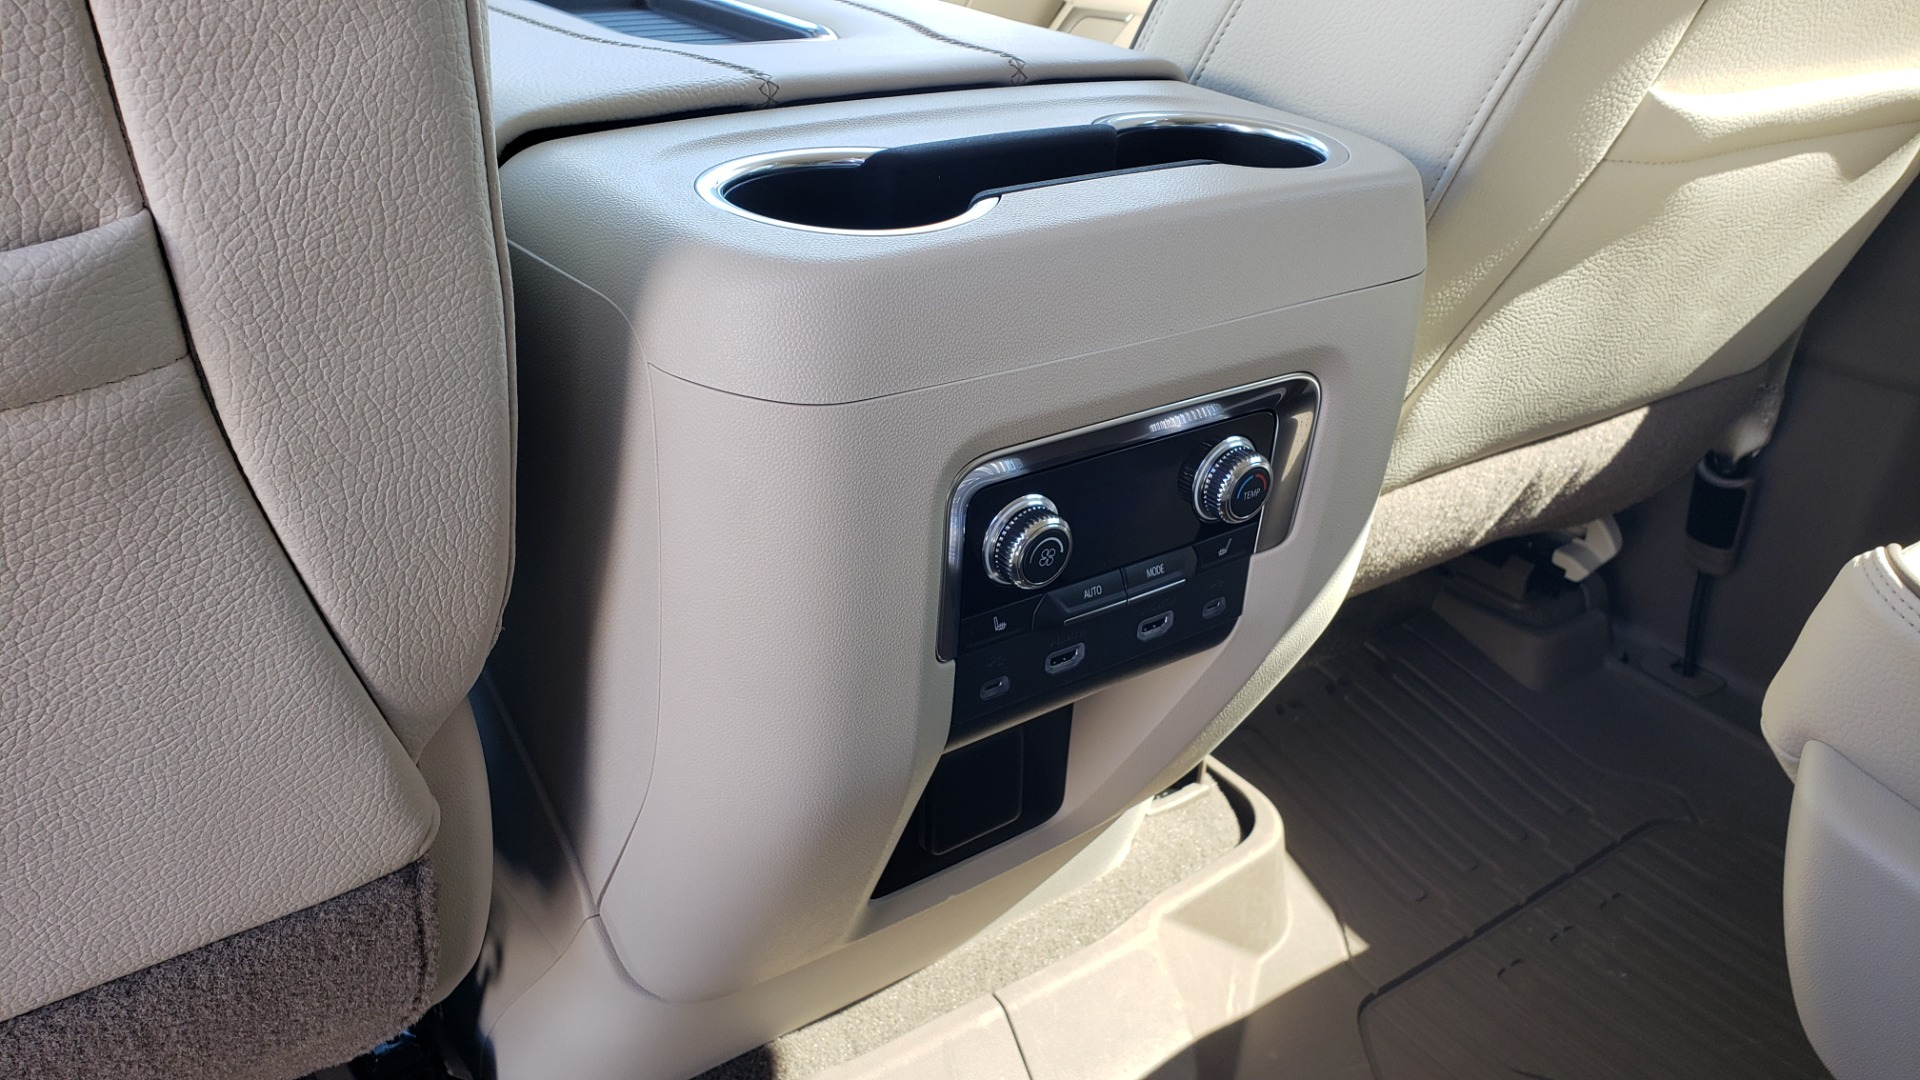 Used 2021 GMC YUKON DENALI PREM / 4WD / NAV / TECH / TRAILER / SECURITY / SUNROOF for sale Sold at Formula Imports in Charlotte NC 28227 57